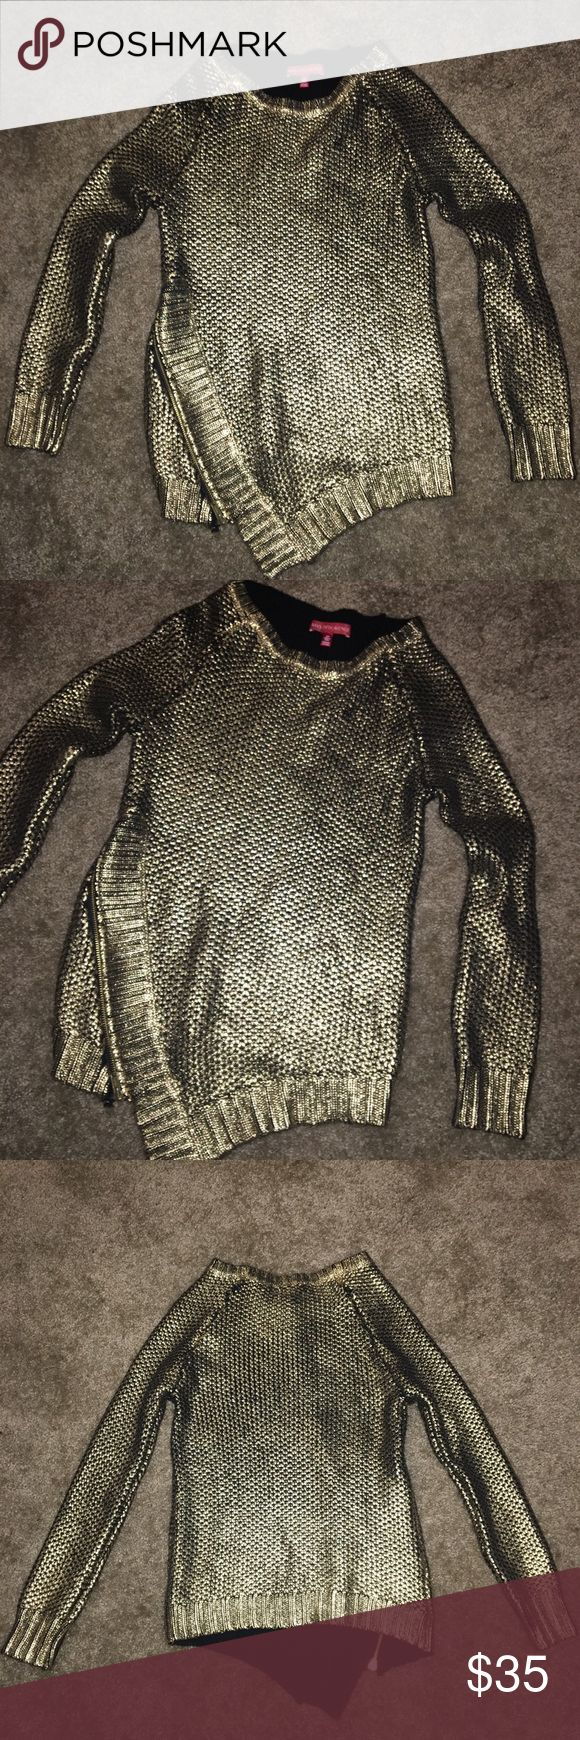 Saks Fifth Avenue Gold Metallic Sweater Small Worn once with no signs of wear.  Front right bottom zipper with point.  Sweater was made with some black spots throughout, some are prominent on upper front and back, see last two pics.  Sleeve length is 24 inches measured from neck, 24 inches from top to bottom. Saks Fifth Avenue Sweaters Crew & Scoop Necks